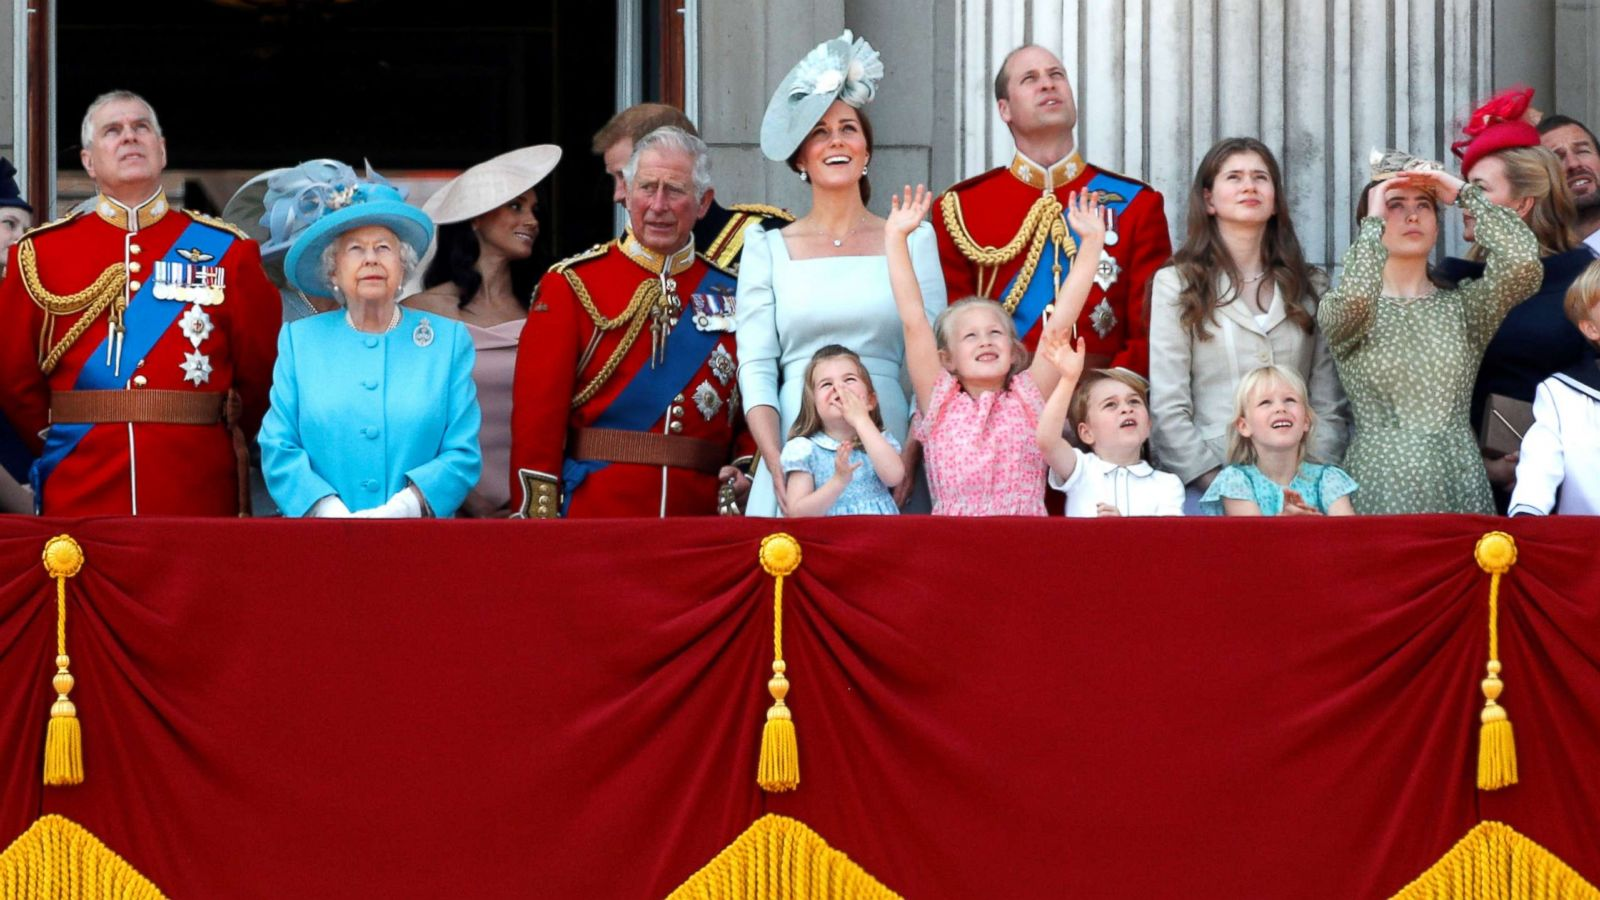 royals-trooping-the-color-1-rt-jt-180609_hpMain_16x9_1600.jpg